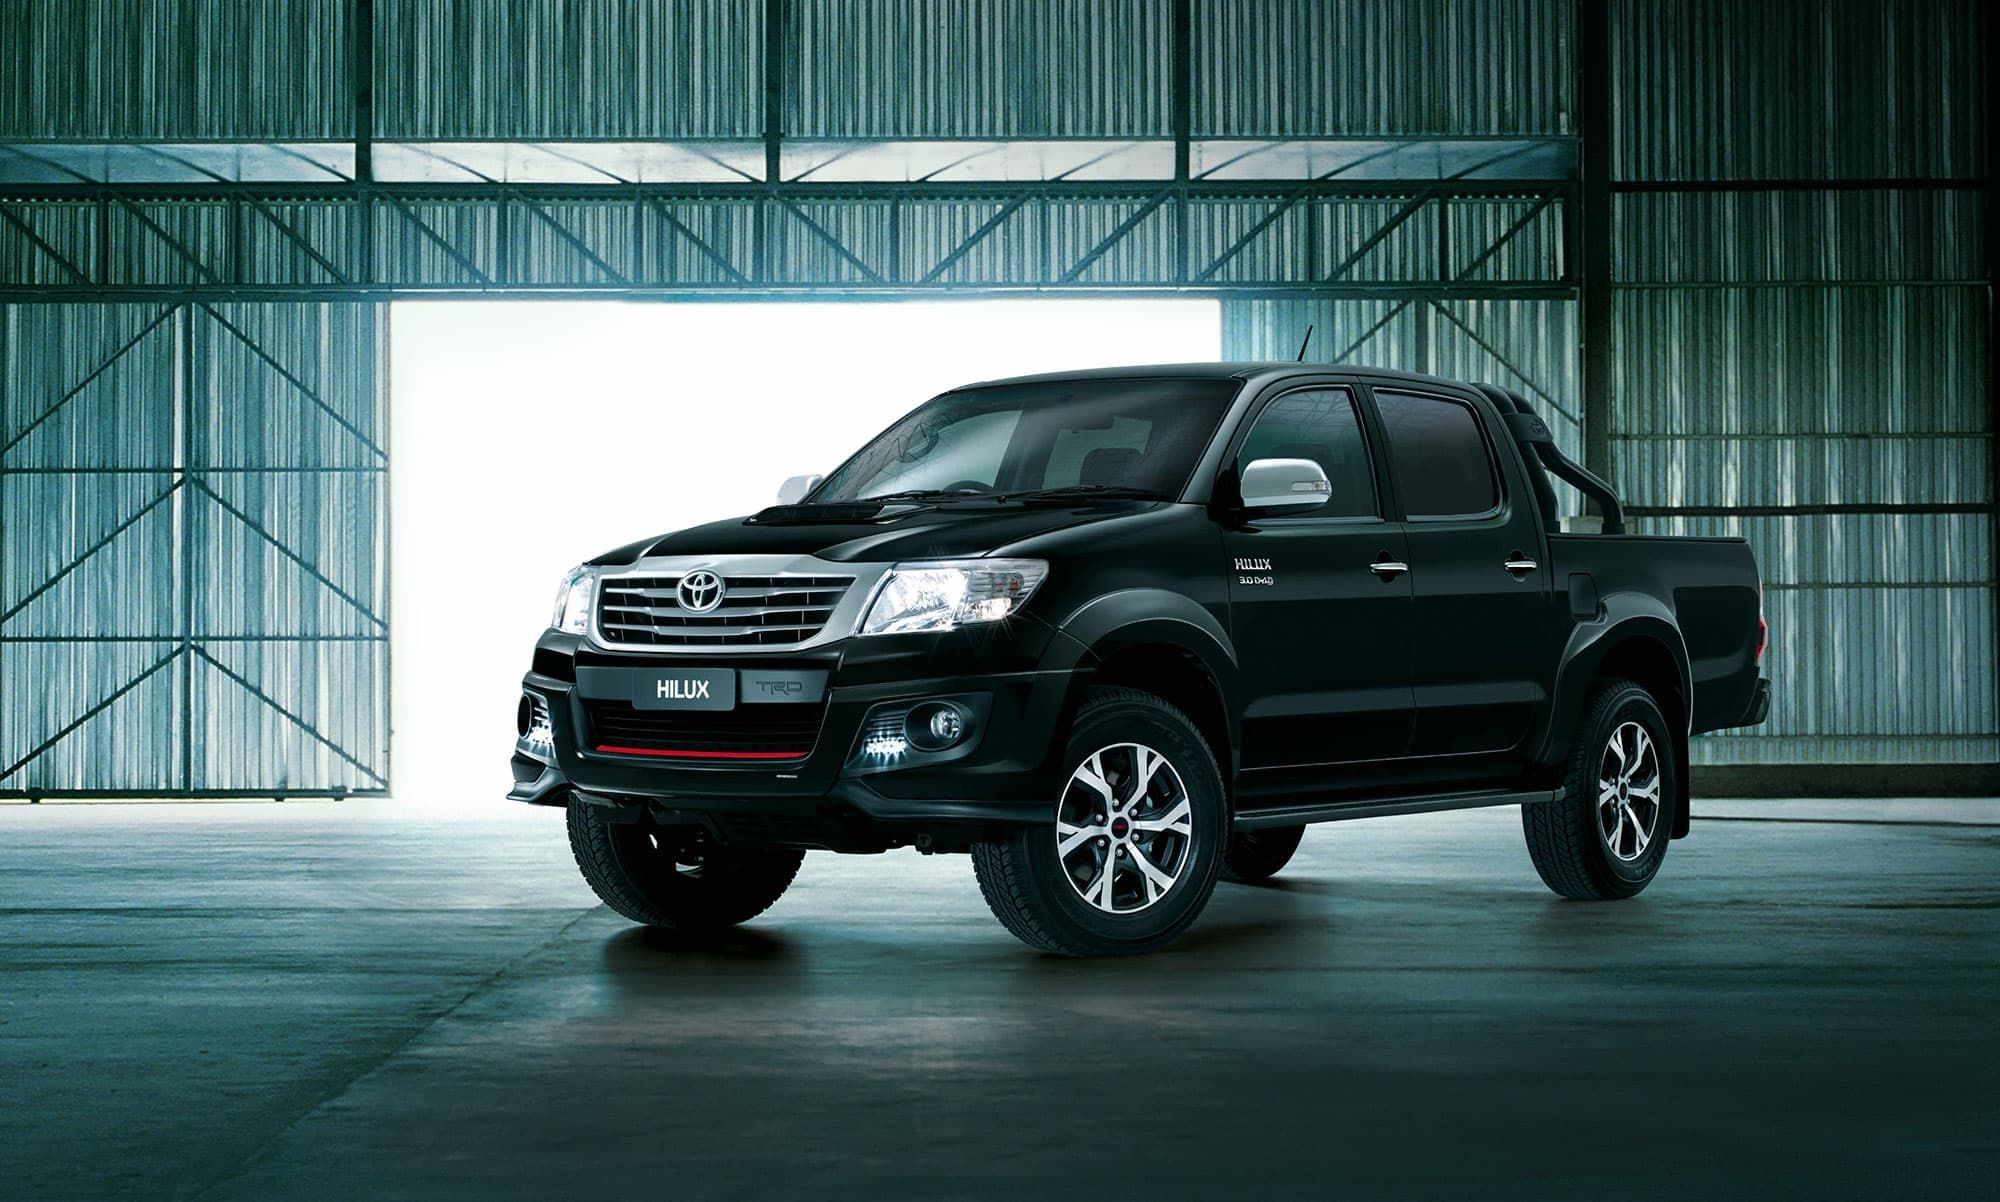 black toyota hilux hd wallpapers